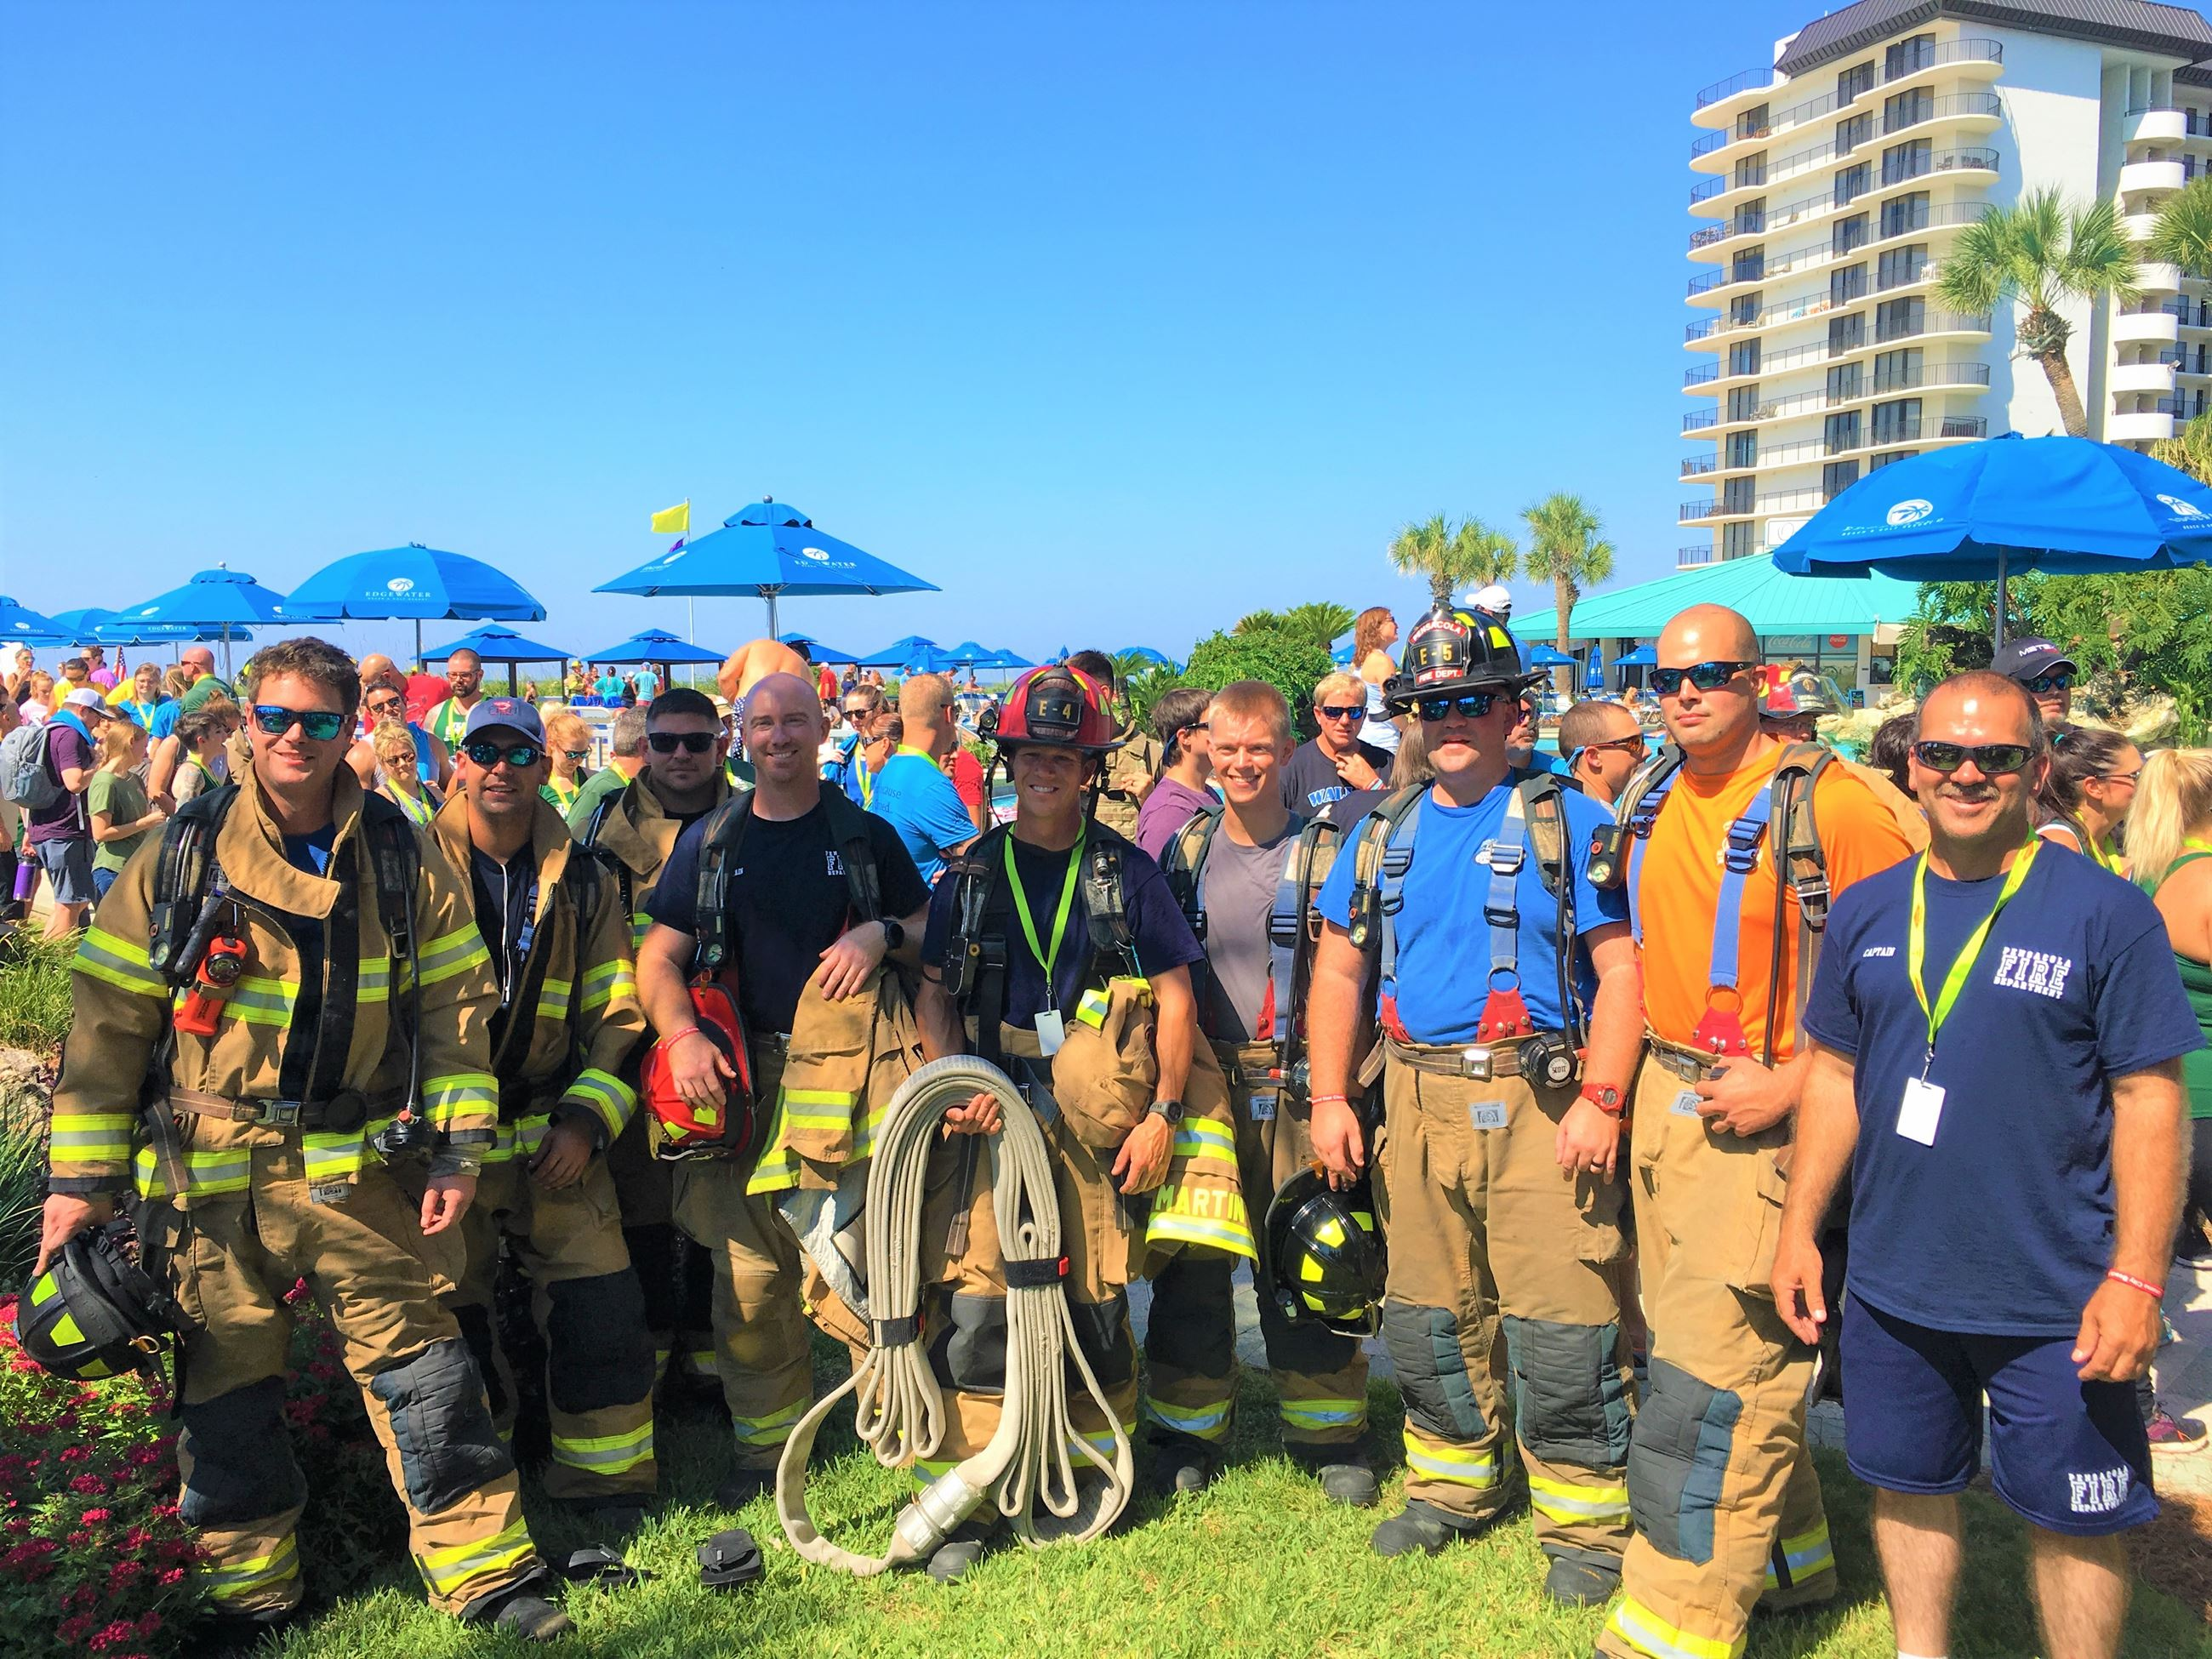 Members of the Pensacola Fire Department after participating in the 2019 Panama City Beach 9/11 Memo